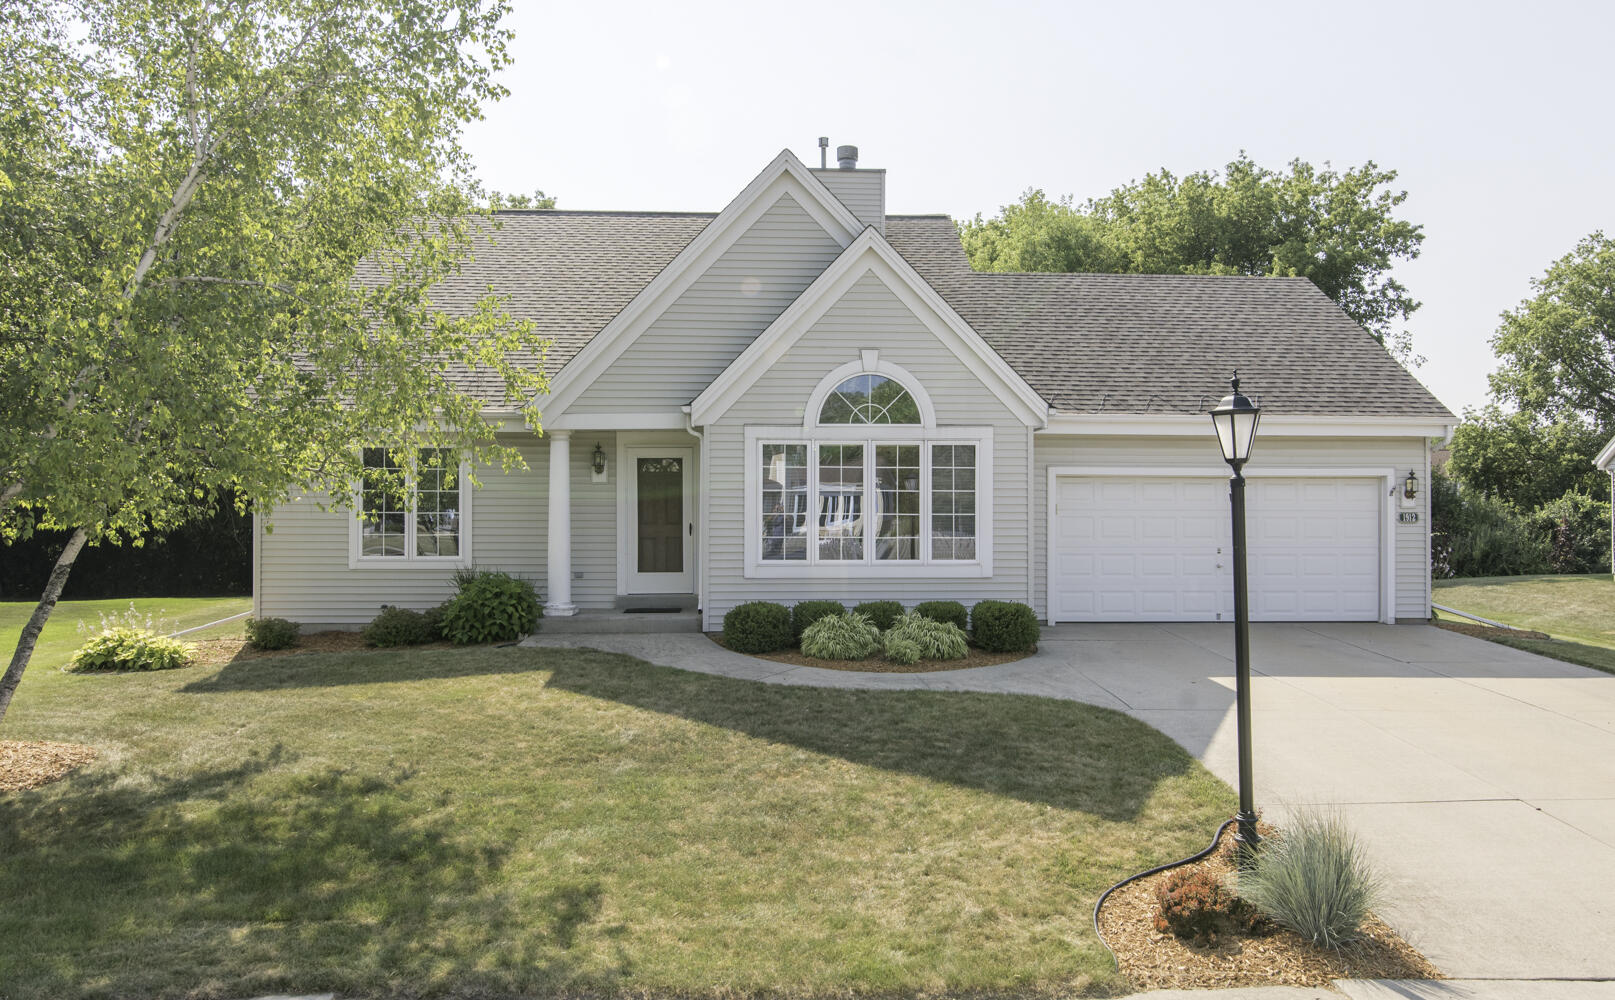 1912 Wexford Ln, Waukesha, Wisconsin 53186, 3 Bedrooms Bedrooms, 5 Rooms Rooms,2 BathroomsBathrooms,Single-Family,For Sale,Wexford Ln,1754885